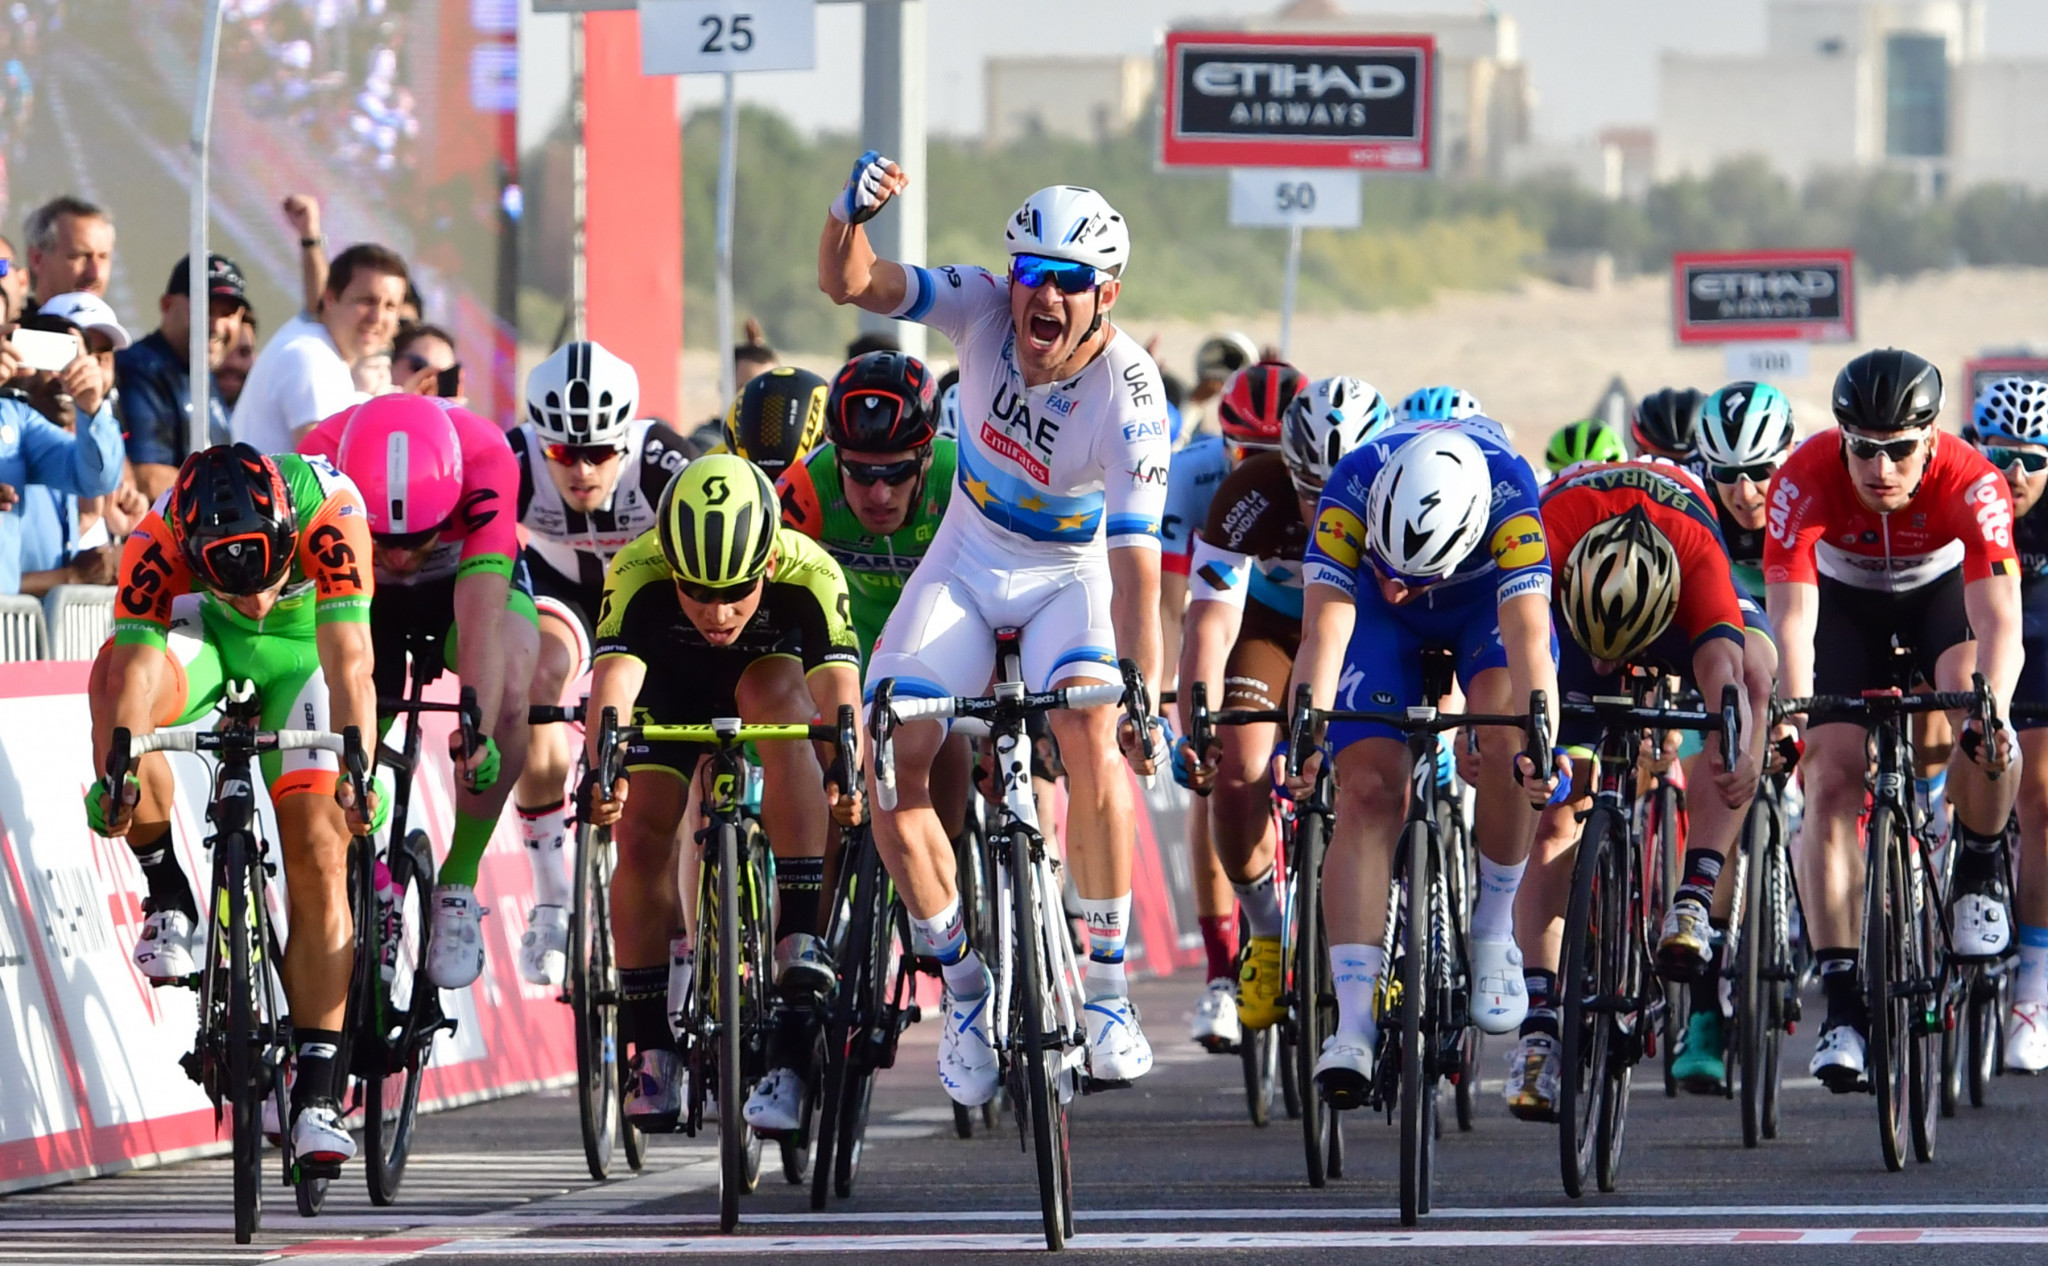 Kristoff wins first stage of Abu Dhabi Tour as Cavendish crashes out